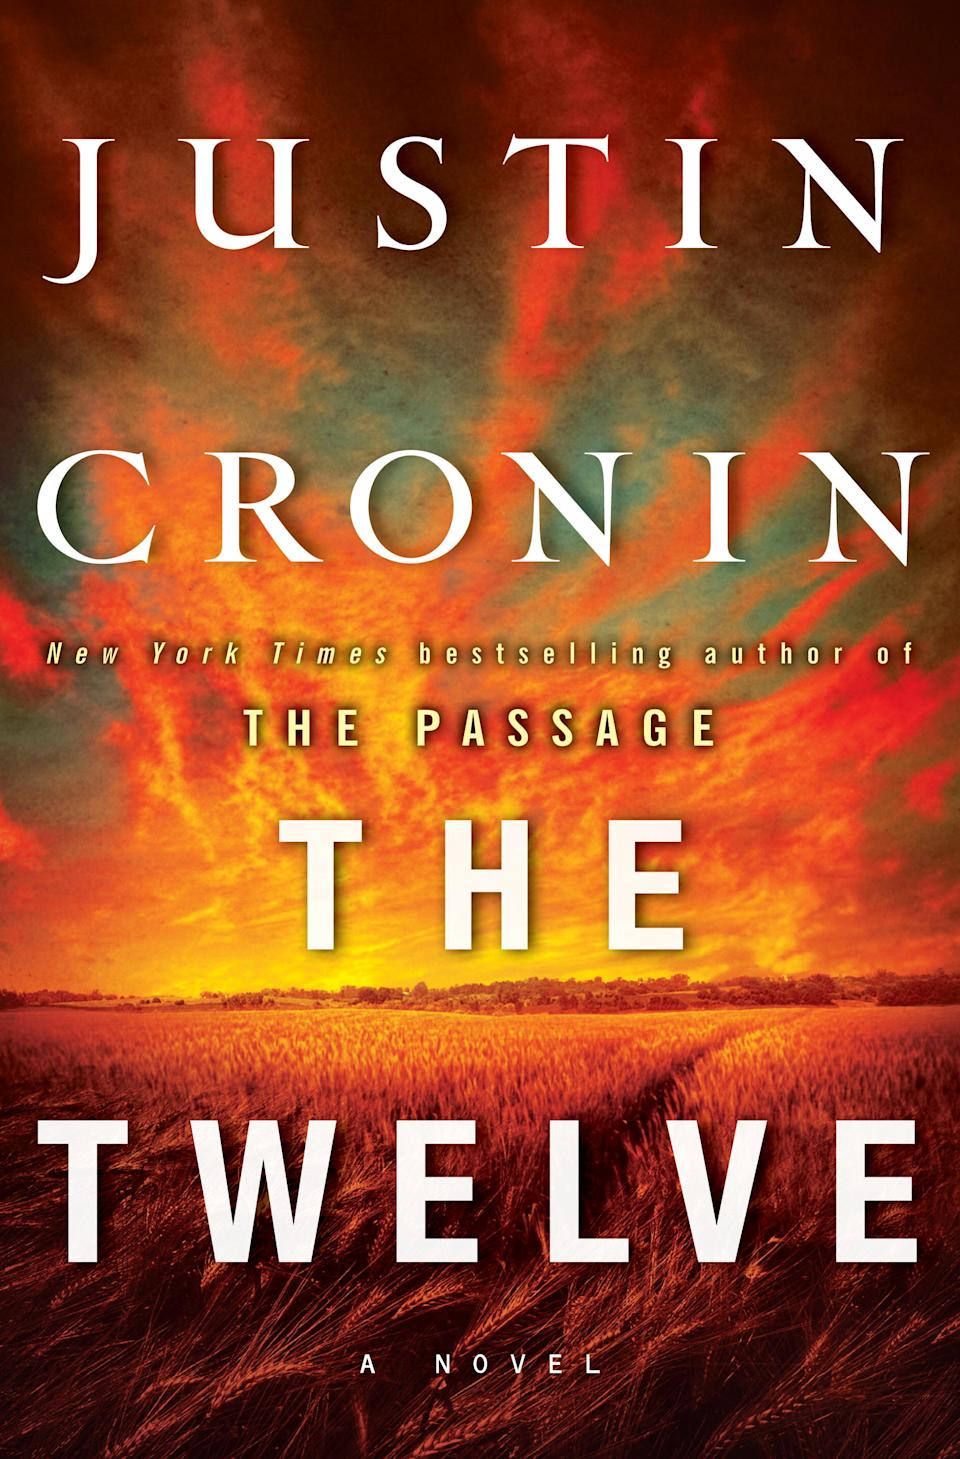 "This book cover image released by Ballantine shows ""The Twelve,"" by Justin Cronin.  Cronin follows his best-selling ""The Passage"" with ""The Twelve,"" the second of a planned trilogy, on Oct. 16, 2012. (AP Photo/Ballantine)"